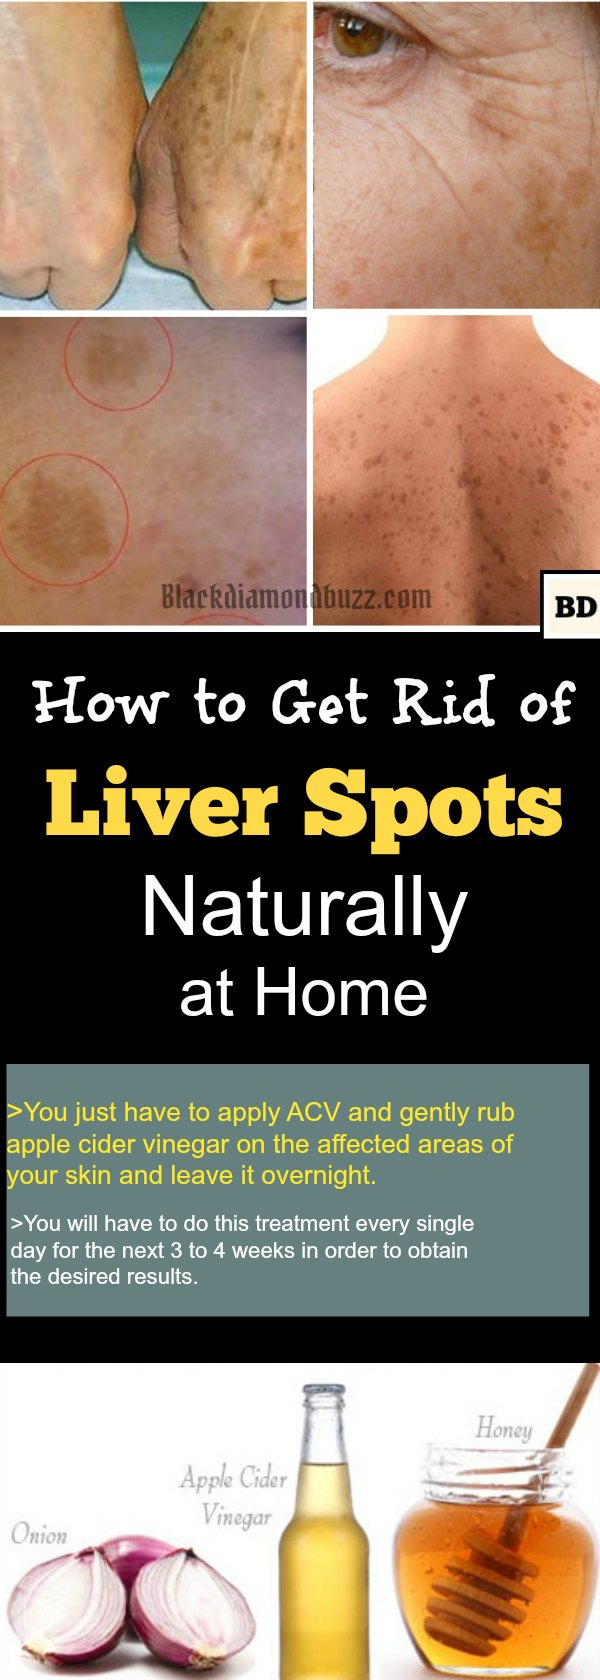 How to Get Rid of Liver Spots Naturally at Home